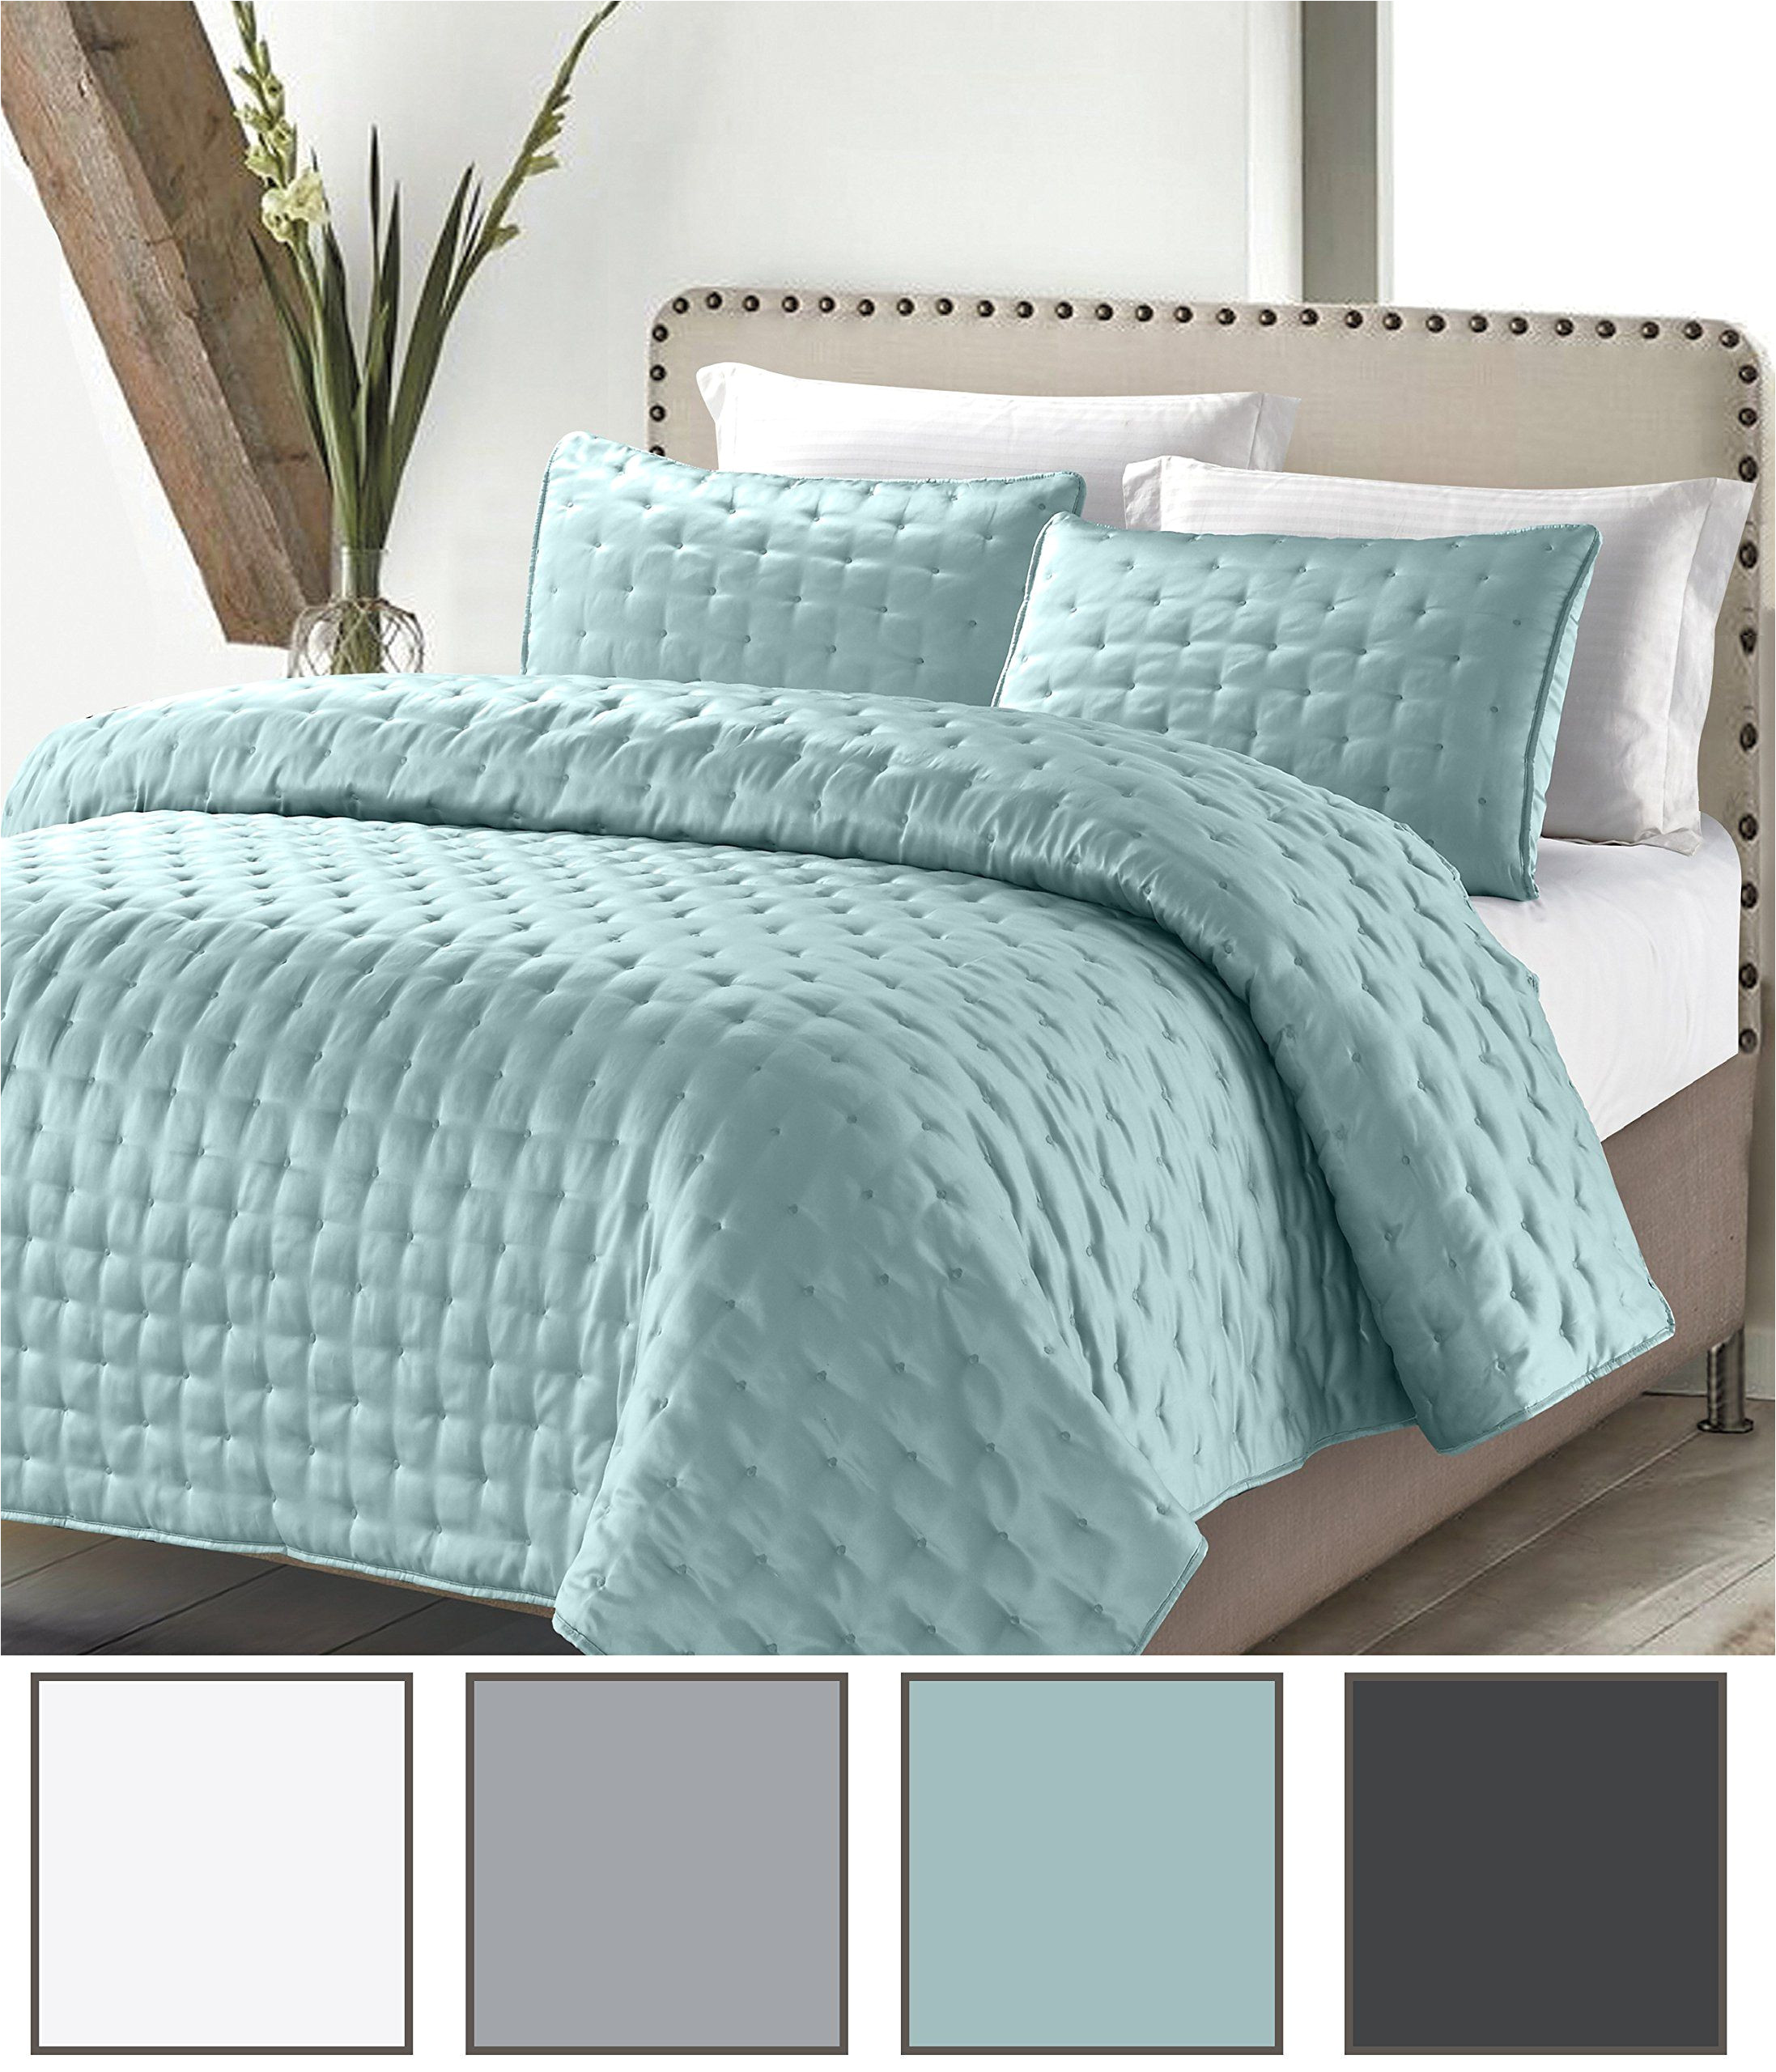 solid quilt set spa king size 4 piece coverlet set luxury hotel masterpiece finely stitched lightweight bedspread by california design den